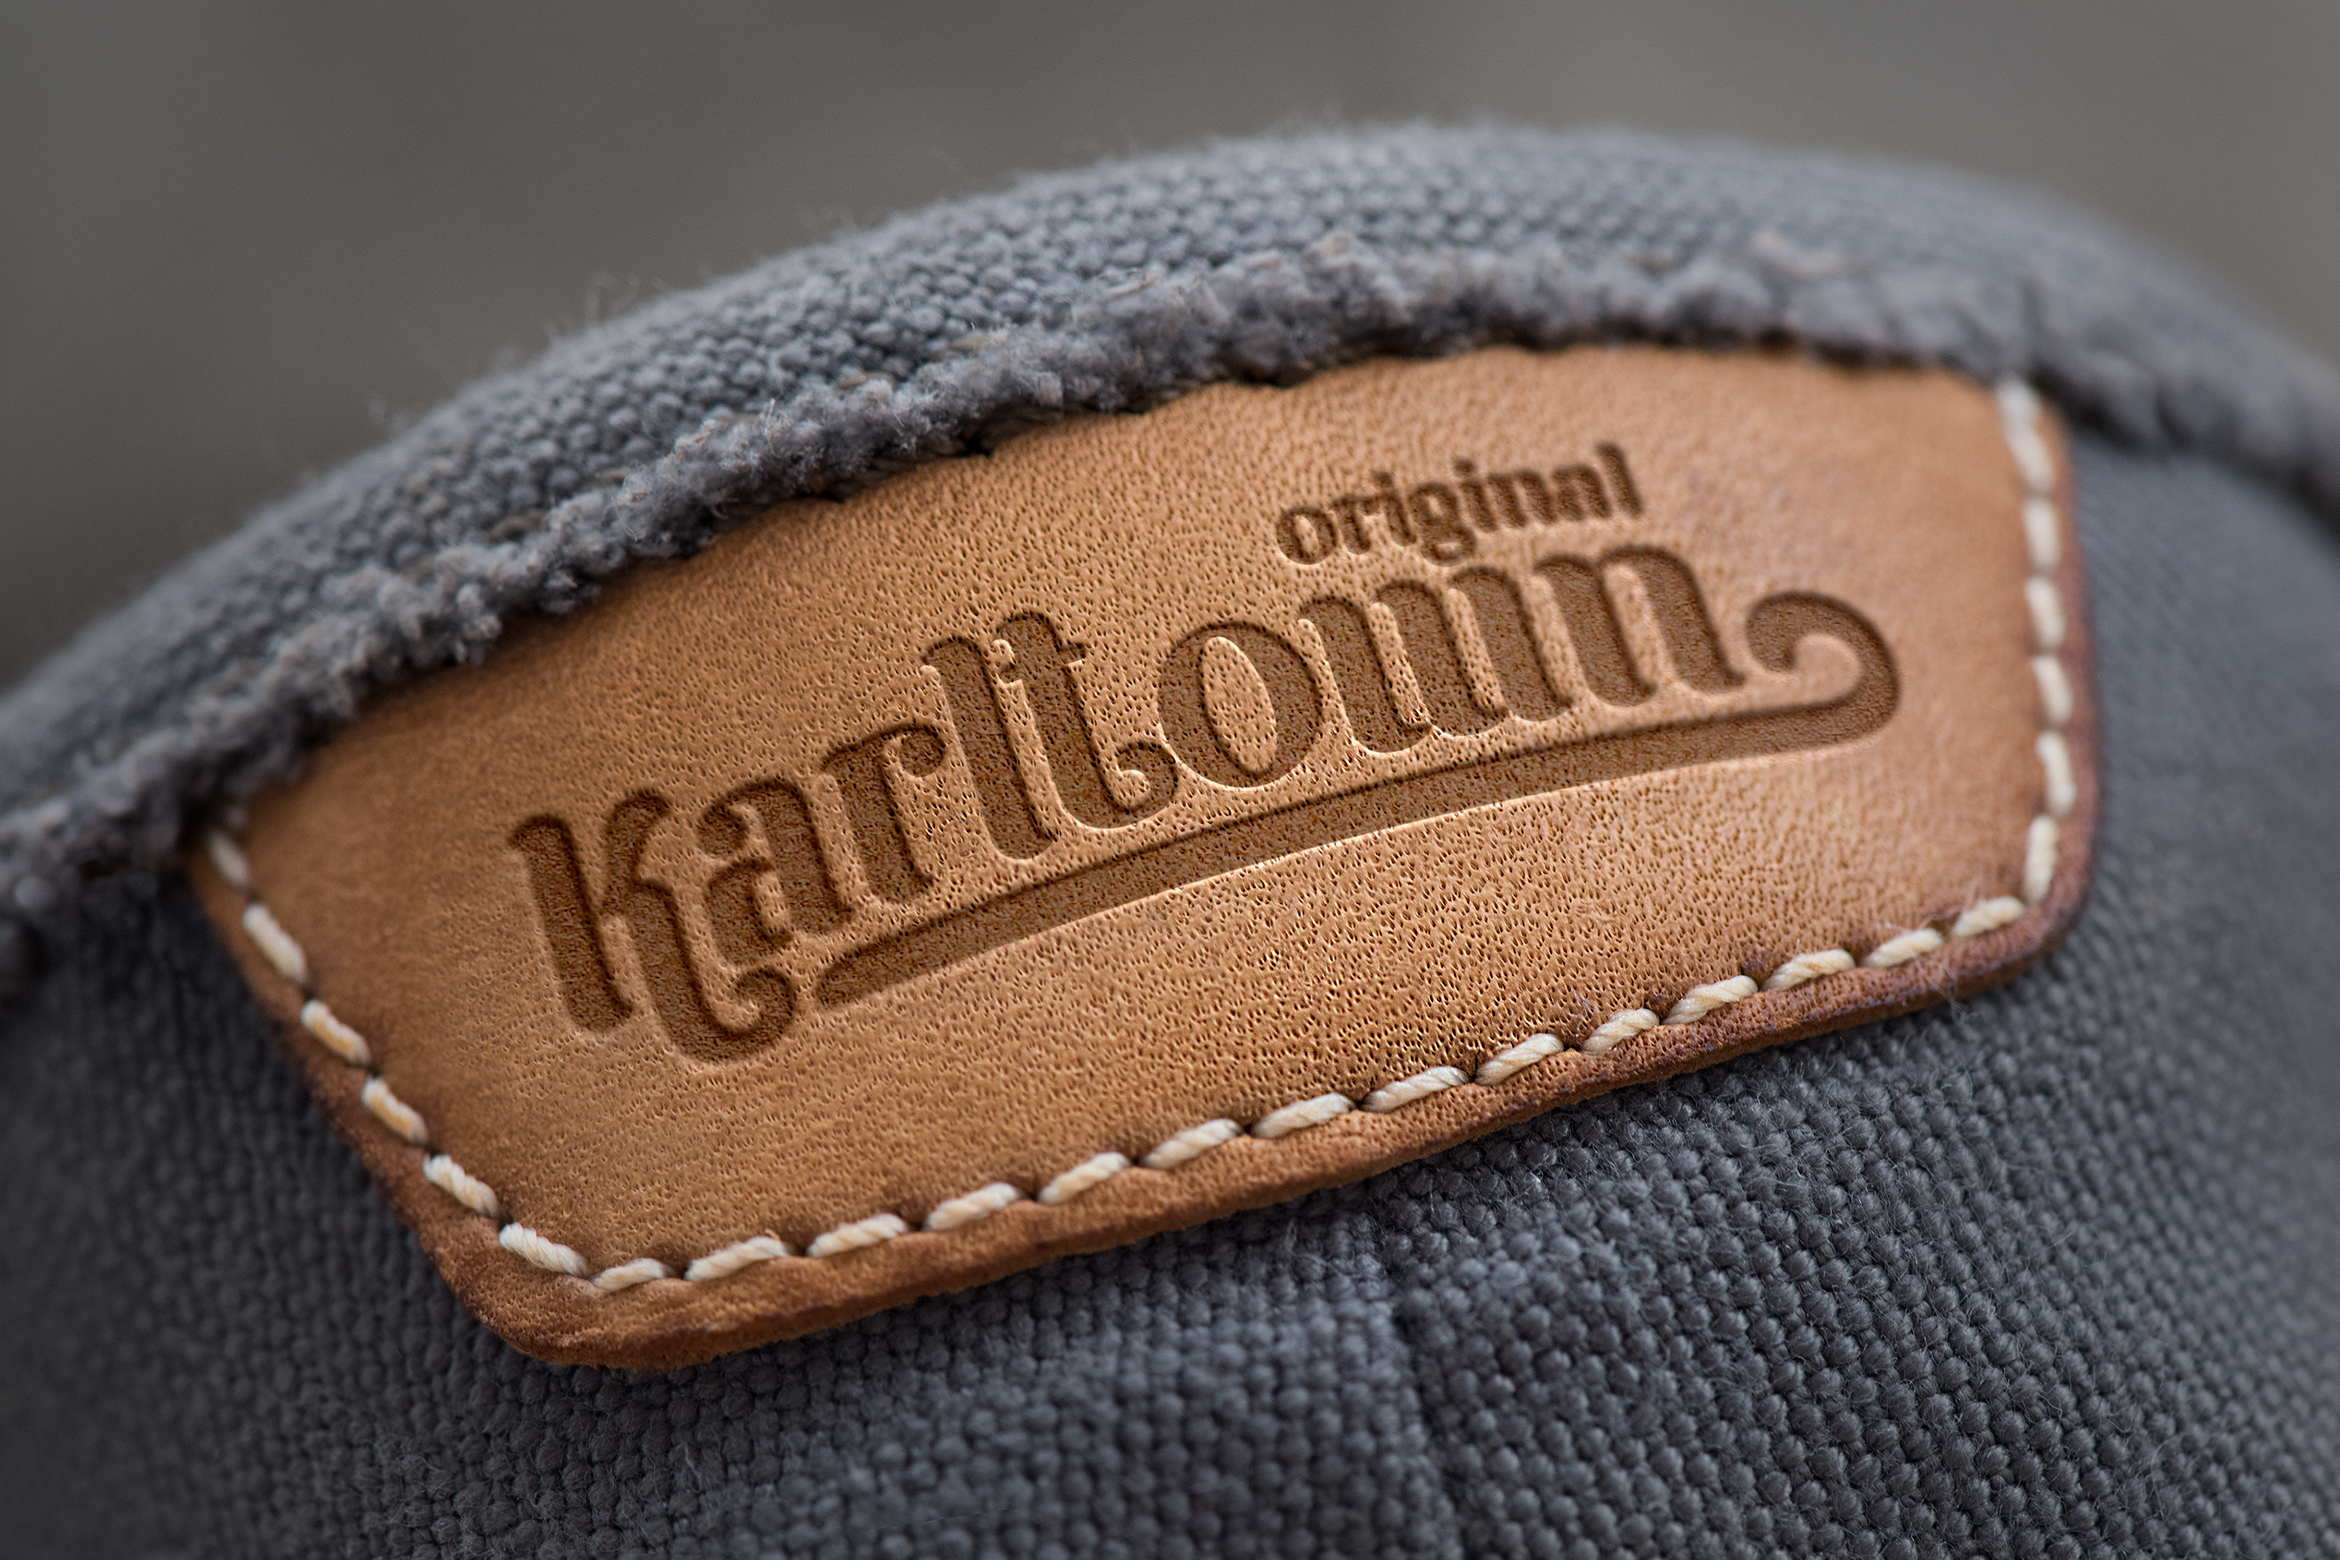 Karltown - Handdrawn Font example image 2